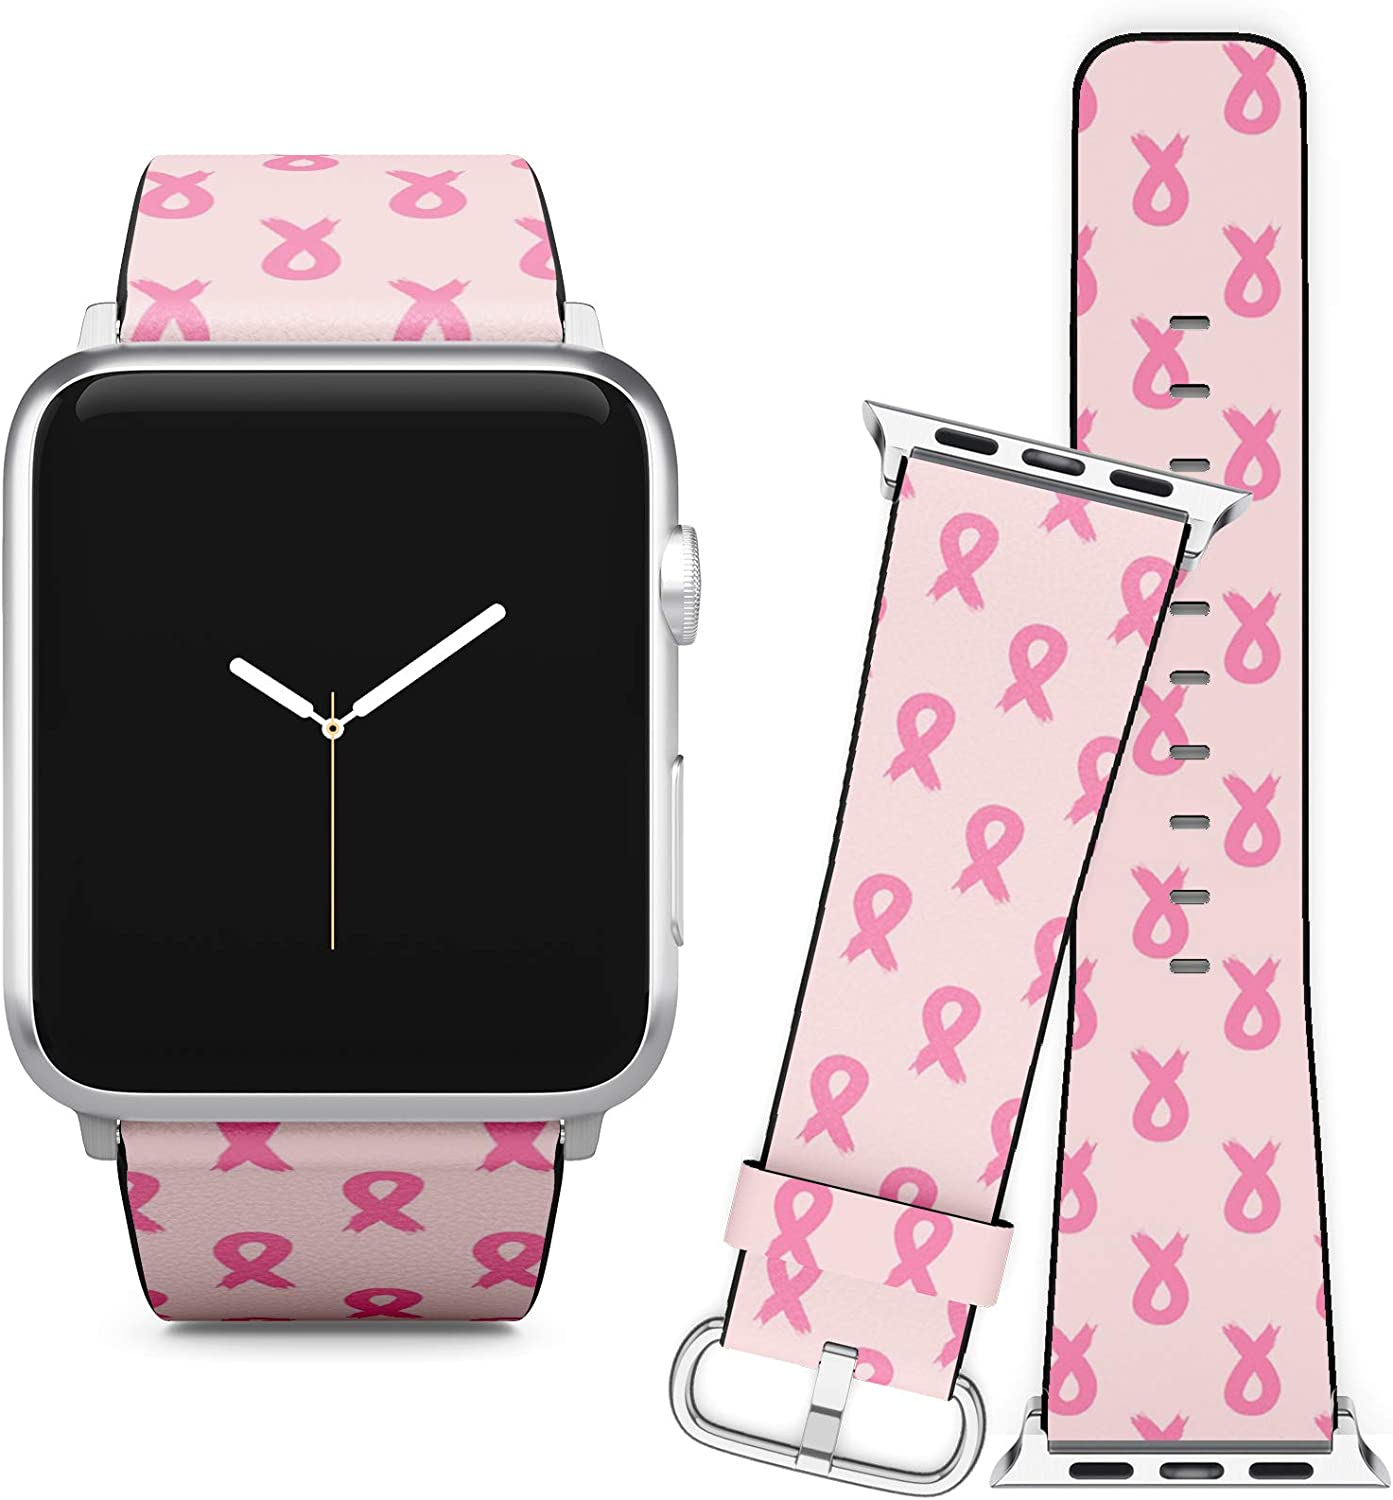 Compatible with Apple Watch (42/44 mm) Series 5, 4, 3, 2, 1 // Leather Replacement Bracelet Strap Wristband + Adapters // Breast Cancer Awareness Ribbon